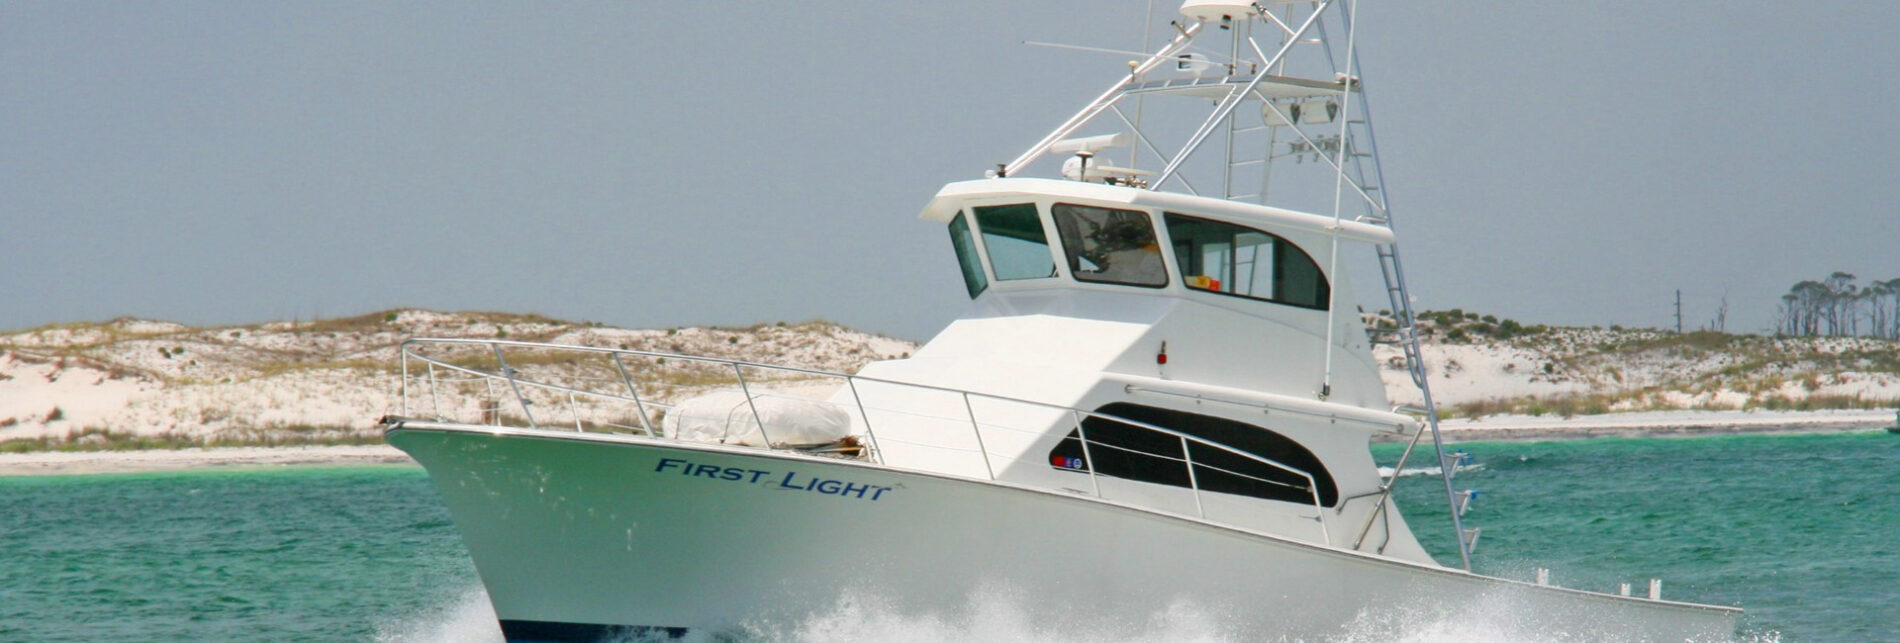 Destin florida deep sea fishing charters trips charter for Best deep sea fishing in florida